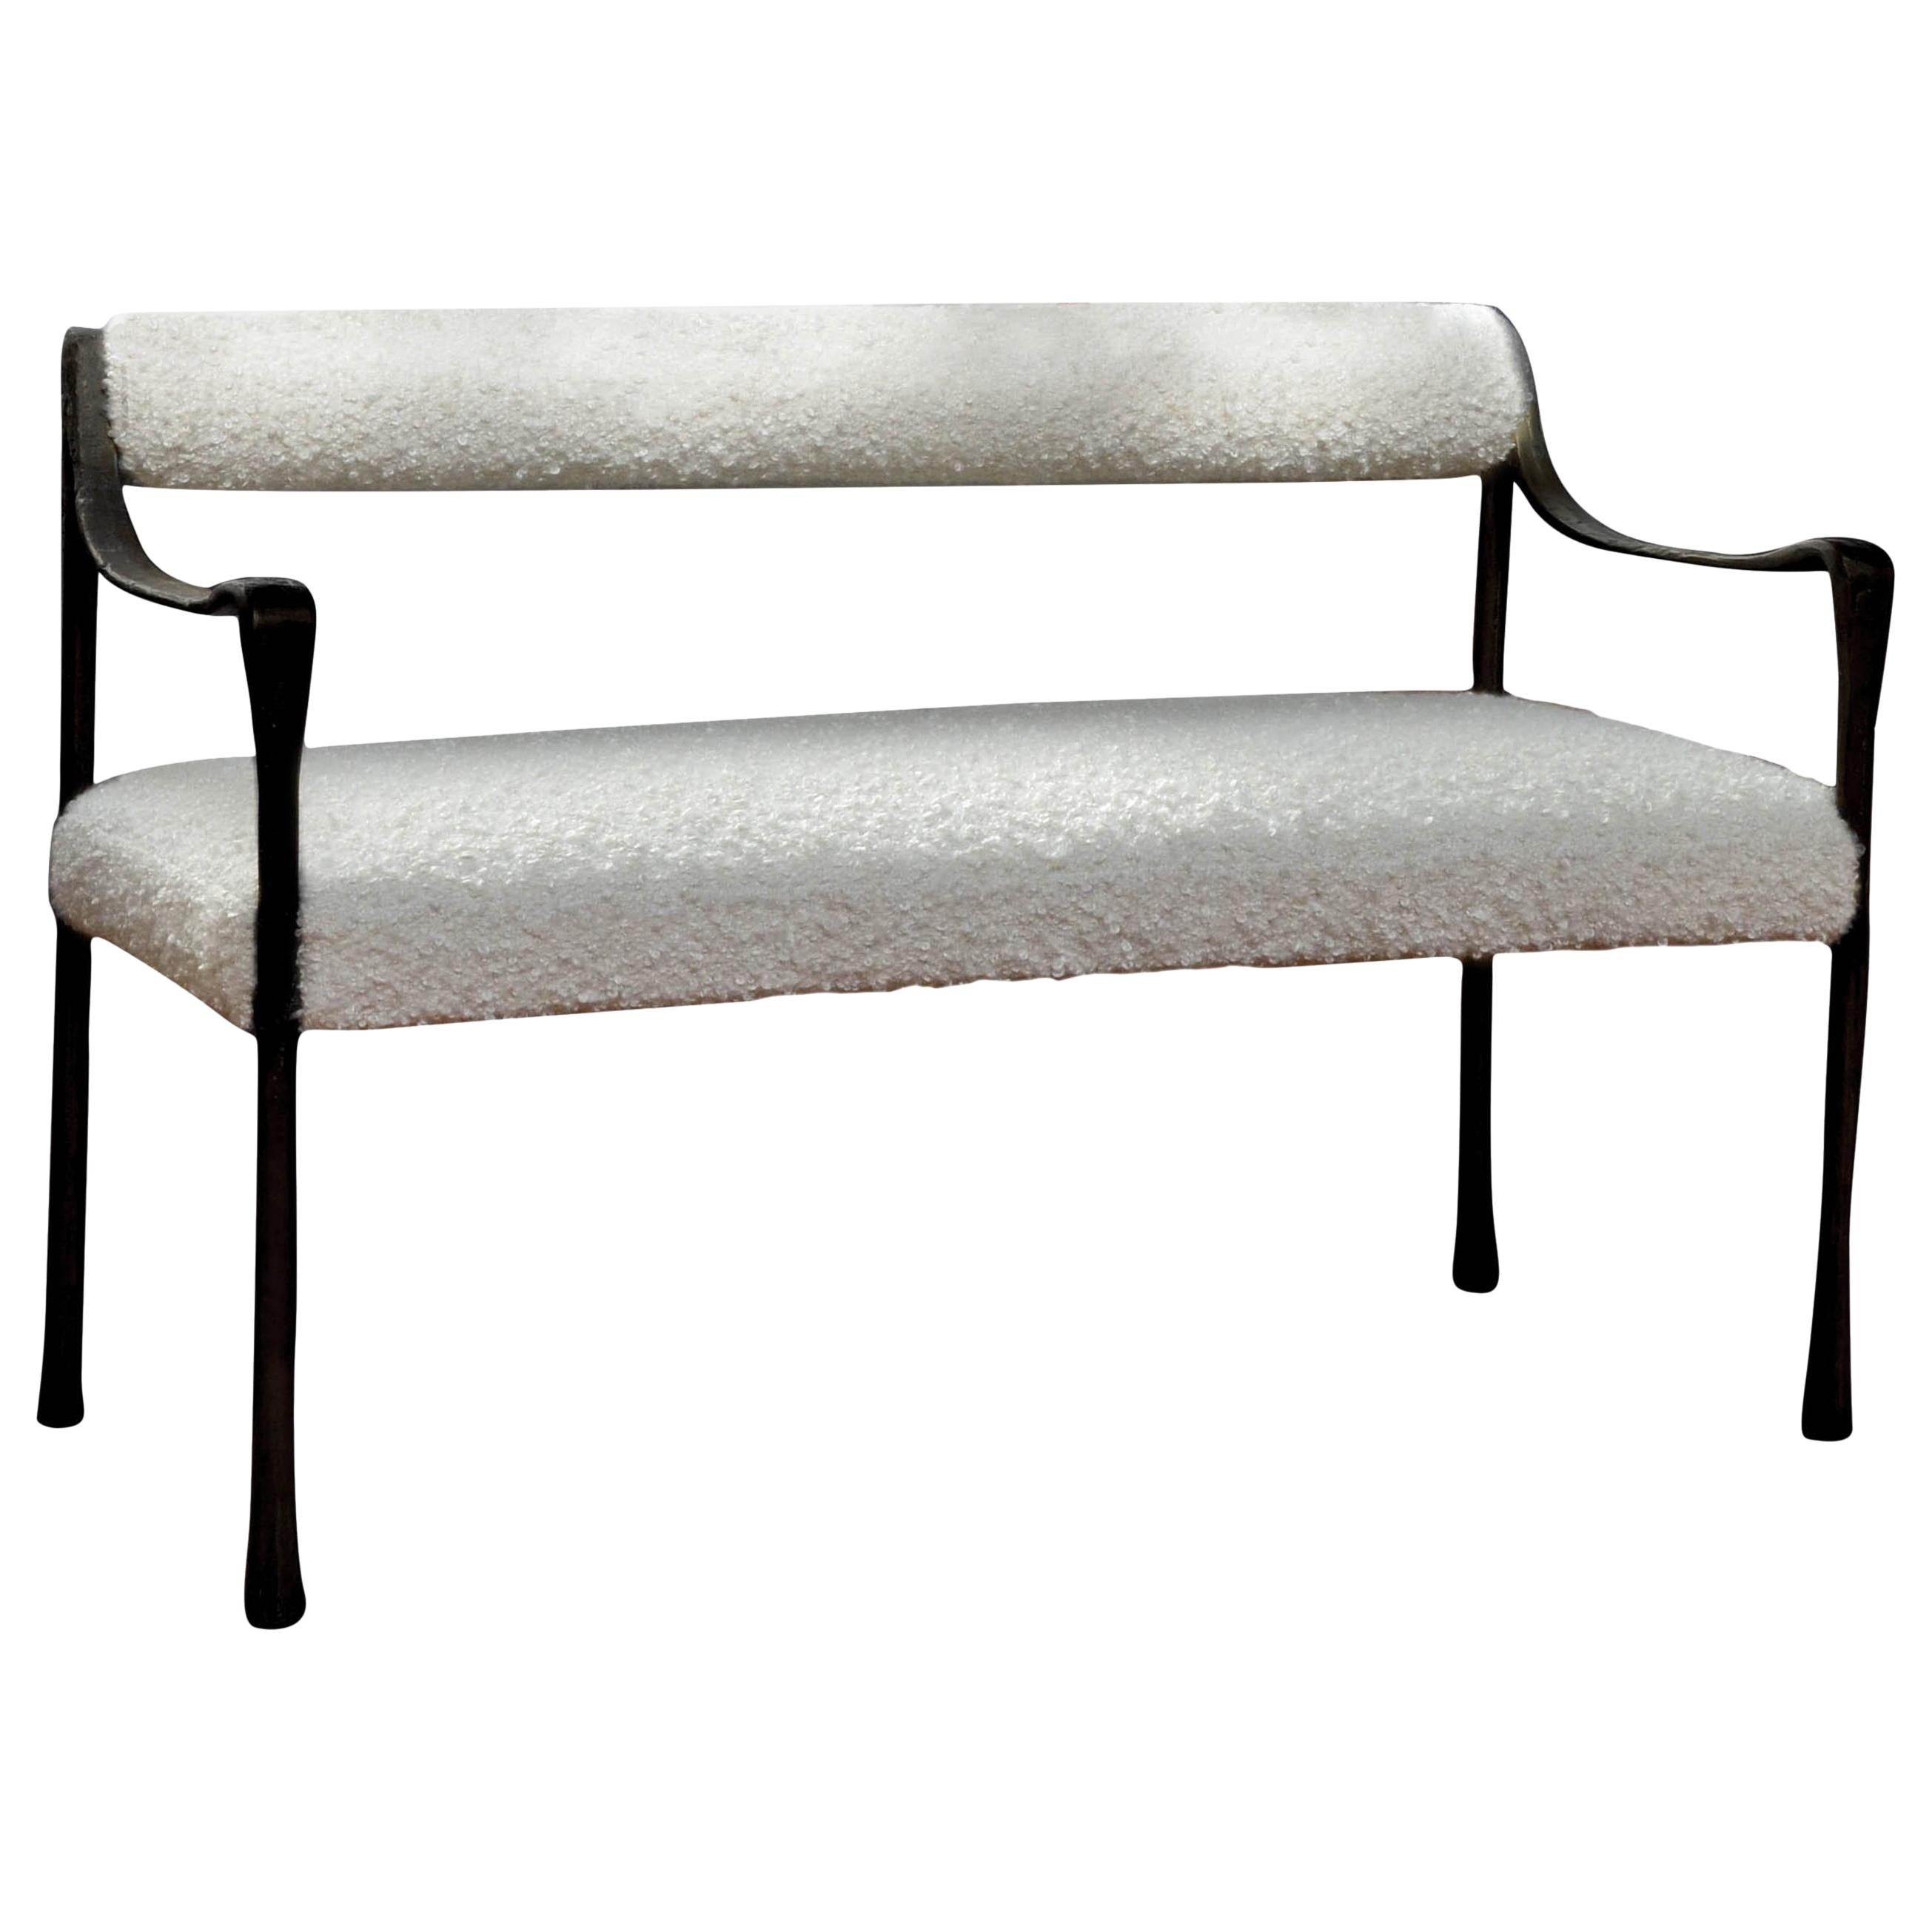 Contemporary Seating Giac Settee With Aluminum Hand Patinated Frame Contemporary Seating Col Com